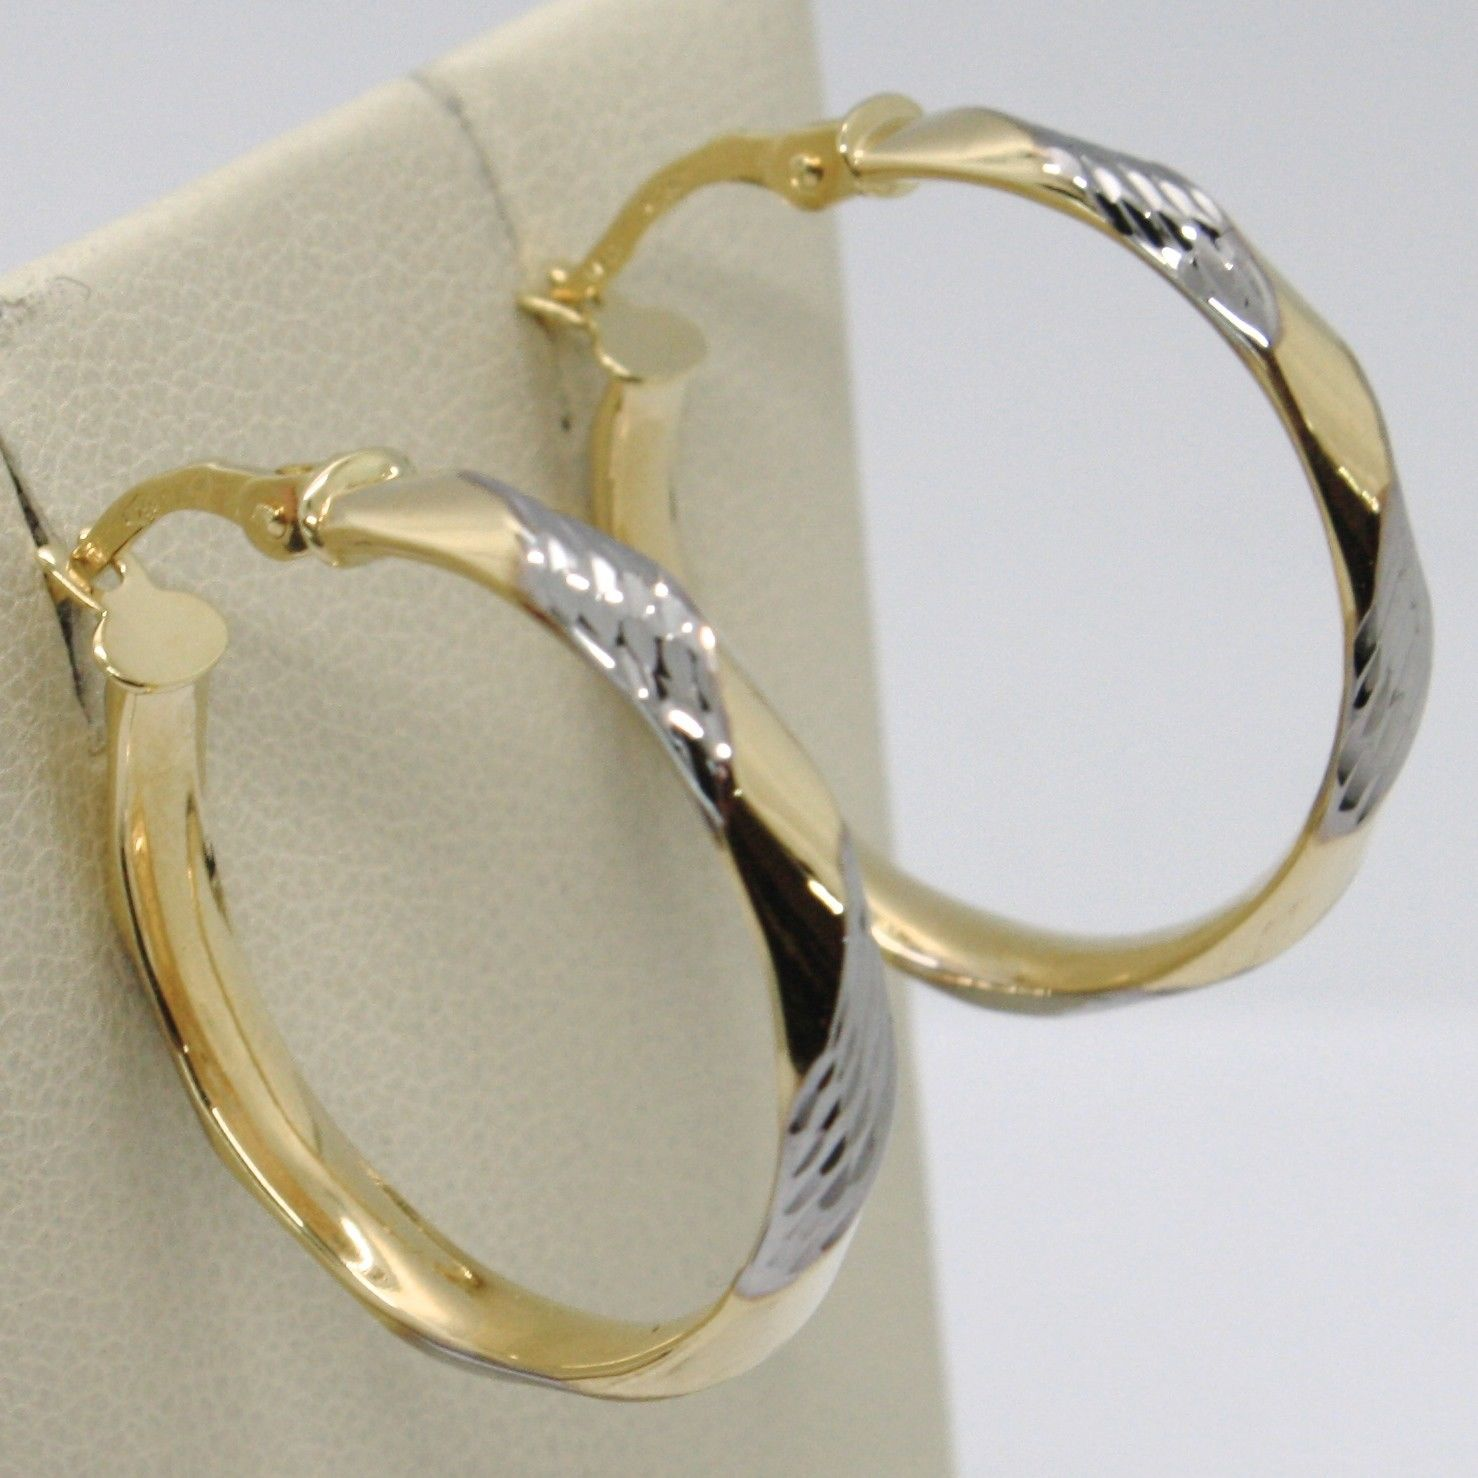 18K YELLOW WHITE GOLD PENDANT CIRCLE HOOPS TWISTED WORKED EARRINGS, ITALY MADE